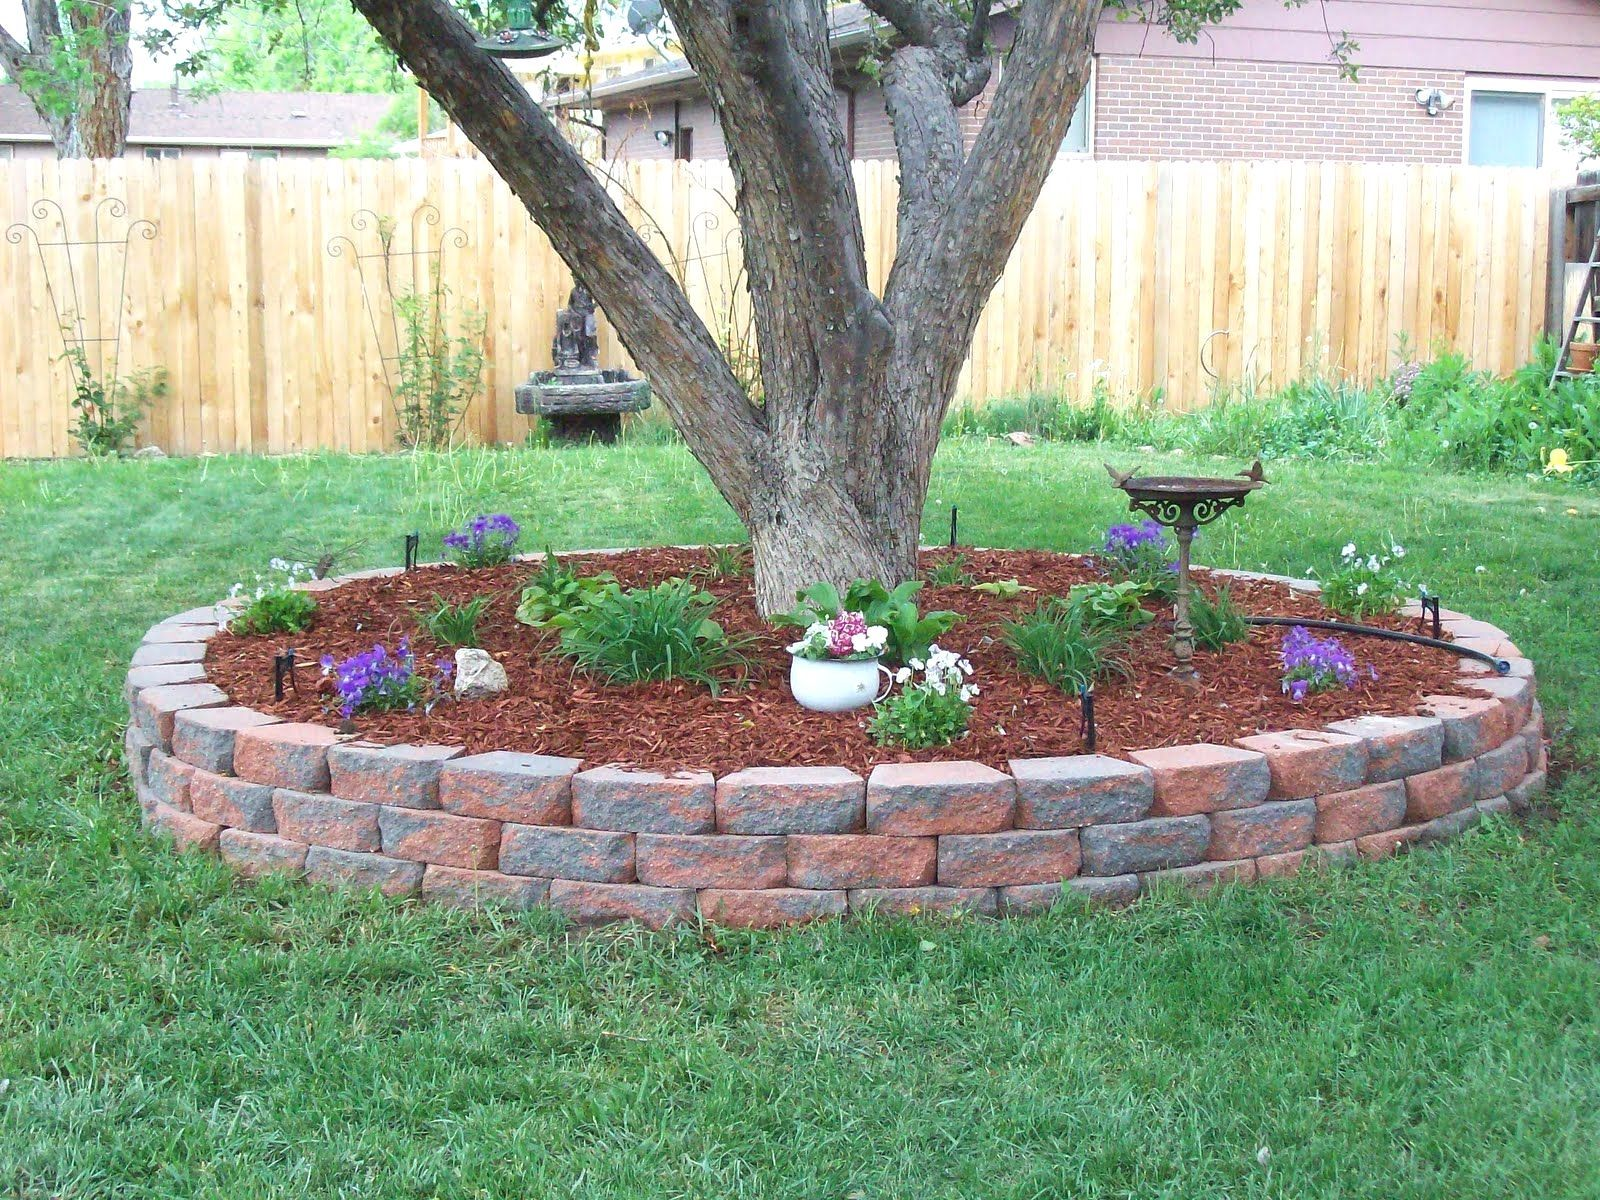 Garden bed with trees   Amazing Fresh Frontyard and Backyard Landscaping Ideas  Градина